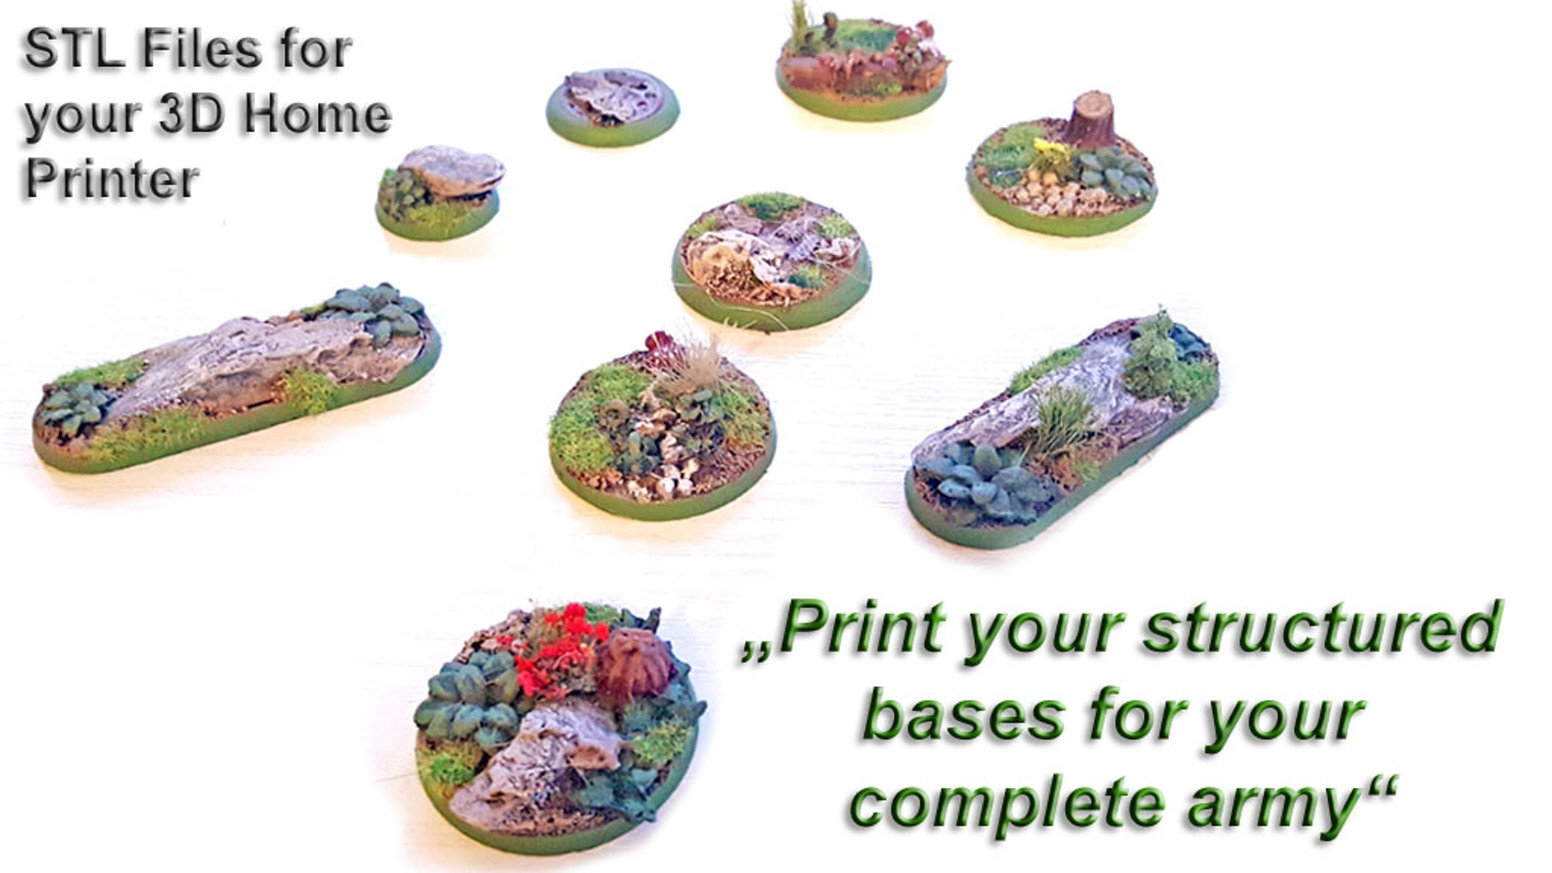 Print your own realistic bases for your complete army with your 3D home Printer!